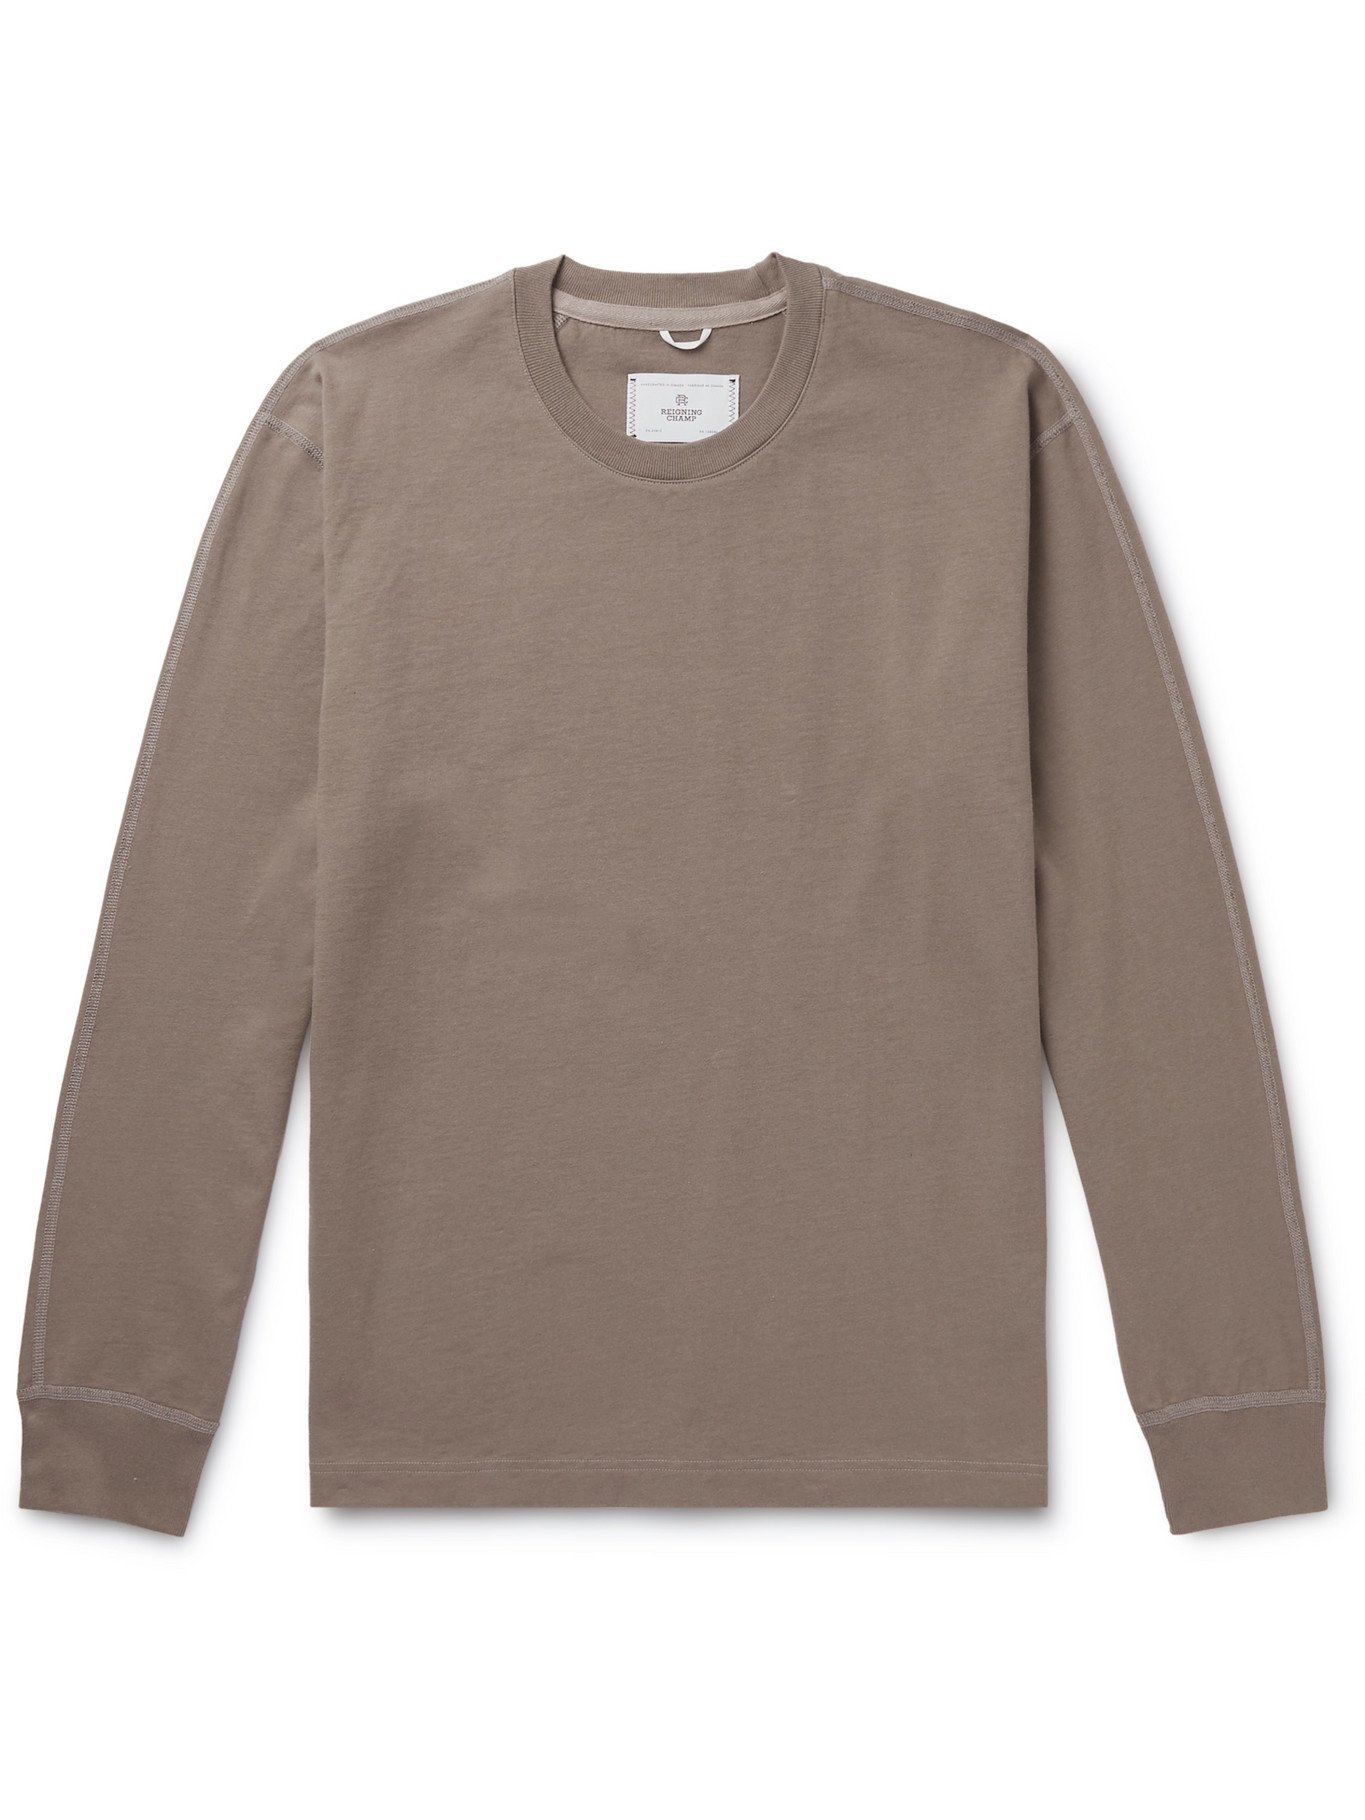 Photo: REIGNING CHAMP - Cotton-Jersey T-Shirt - Brown - S